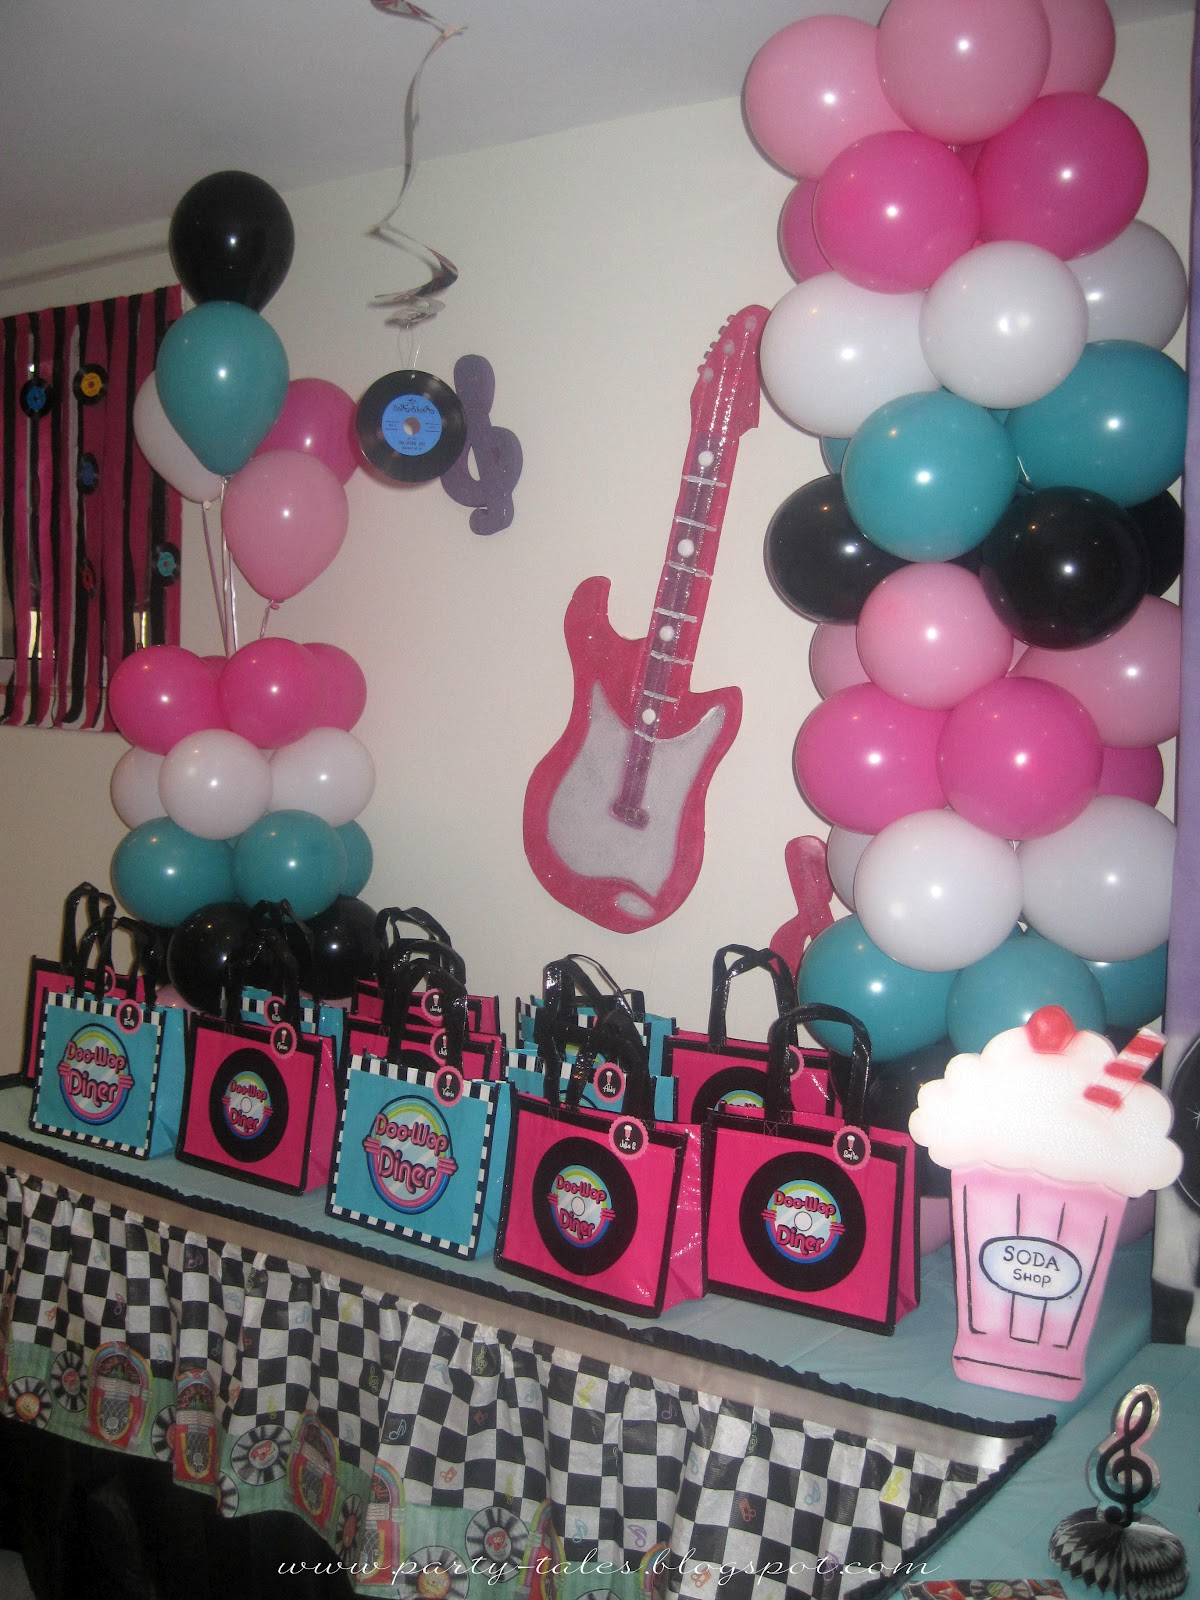 Party tales birthday party 50 39 s diner sock hop party for 50s party decoration